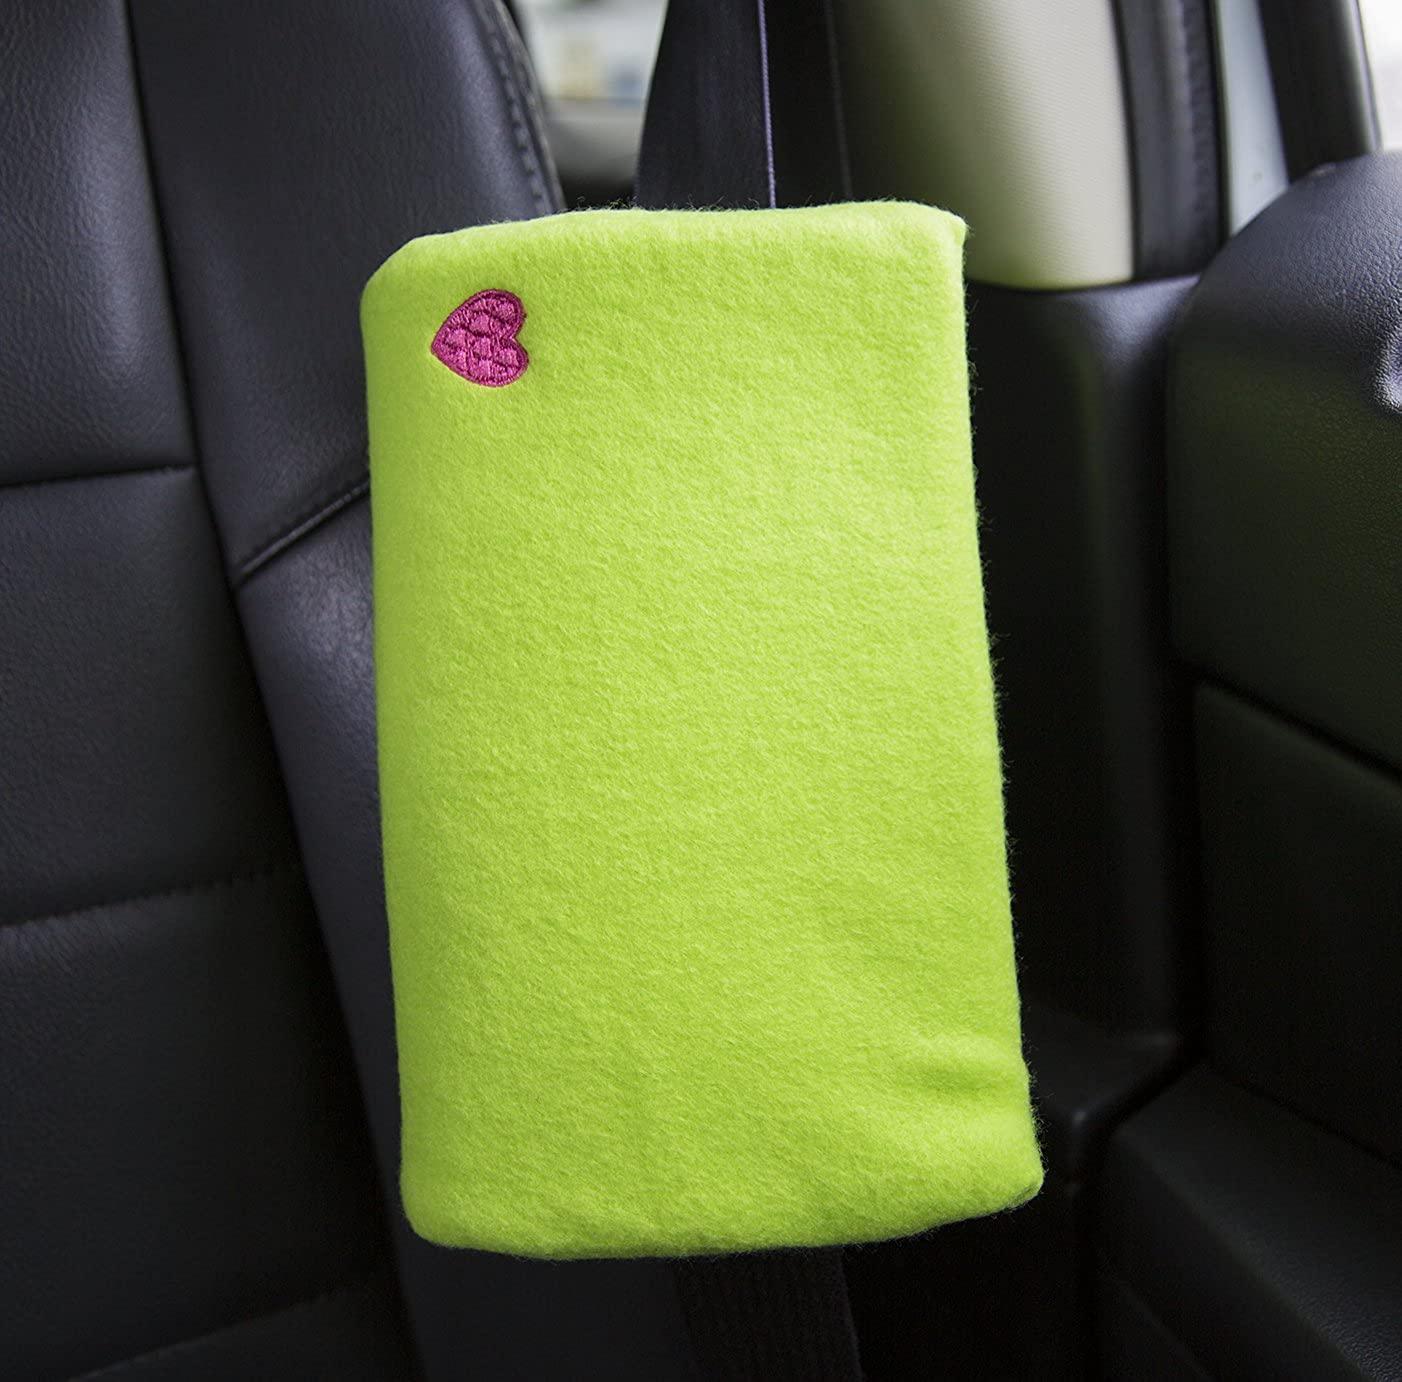 Pillow /& Seatbelt Cushion for Tummie Buddy Lapbelt Cushion for C-section Hernia The Breast /& Chest Buddy or Abdominal Surgery Green With Heart